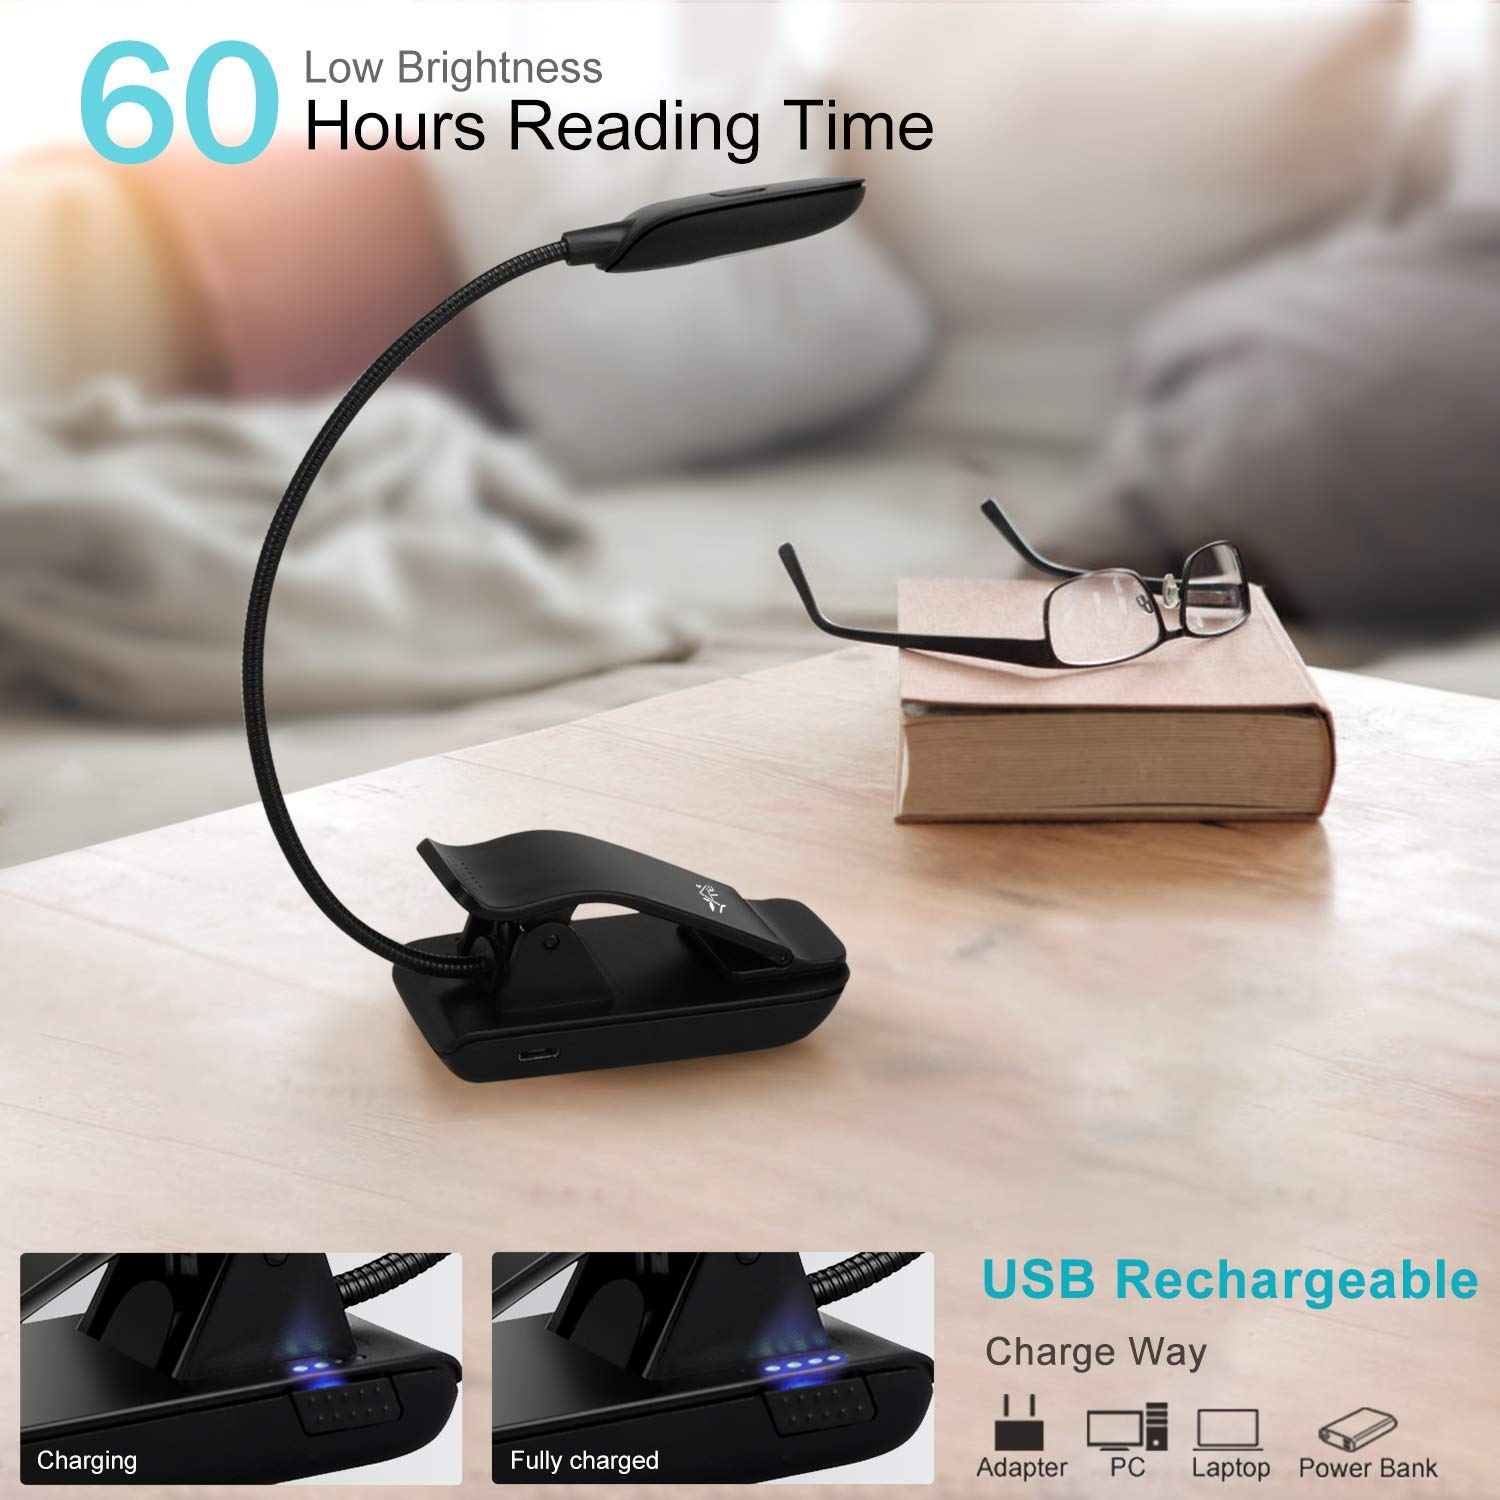 Yte Book Light Rechargeable Reading With 6 Warm Led 3 Loop September Powerbank Slim 80000mah Level Brightness And Eye Care Lamp Up To 60 Hours Clip On Books Kindle